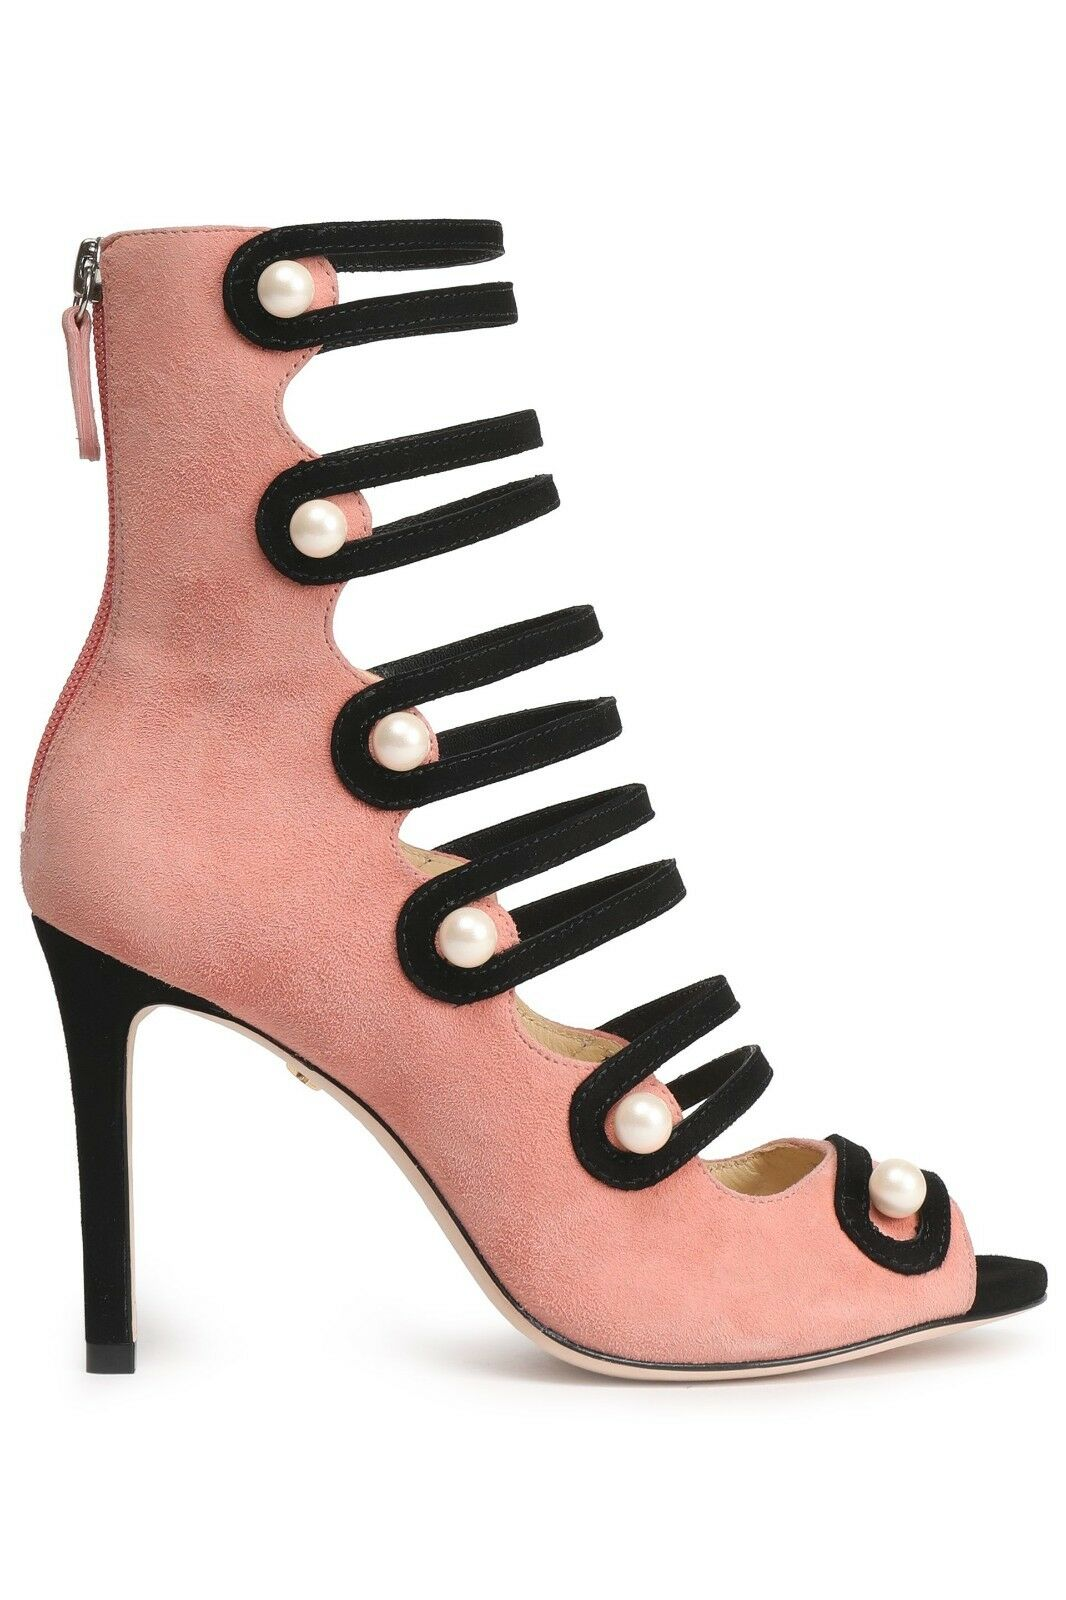 Isa Tapia Pearl-Studded Suede Bootie Sandals (38) (38) (38) b73d08